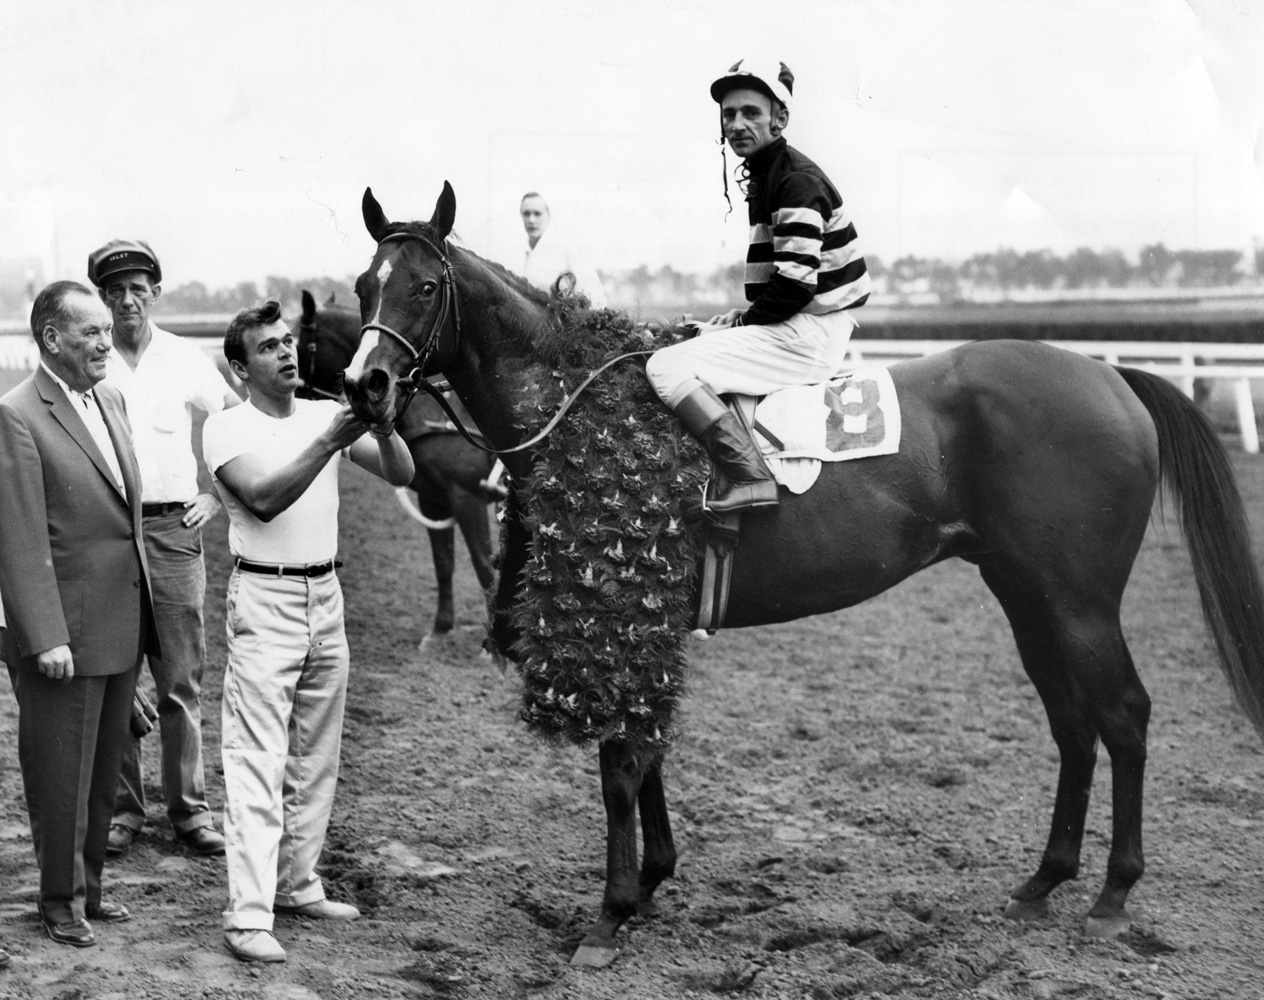 Swoon's Son in the winner's circle (Carl Schultz/Museum Collection)